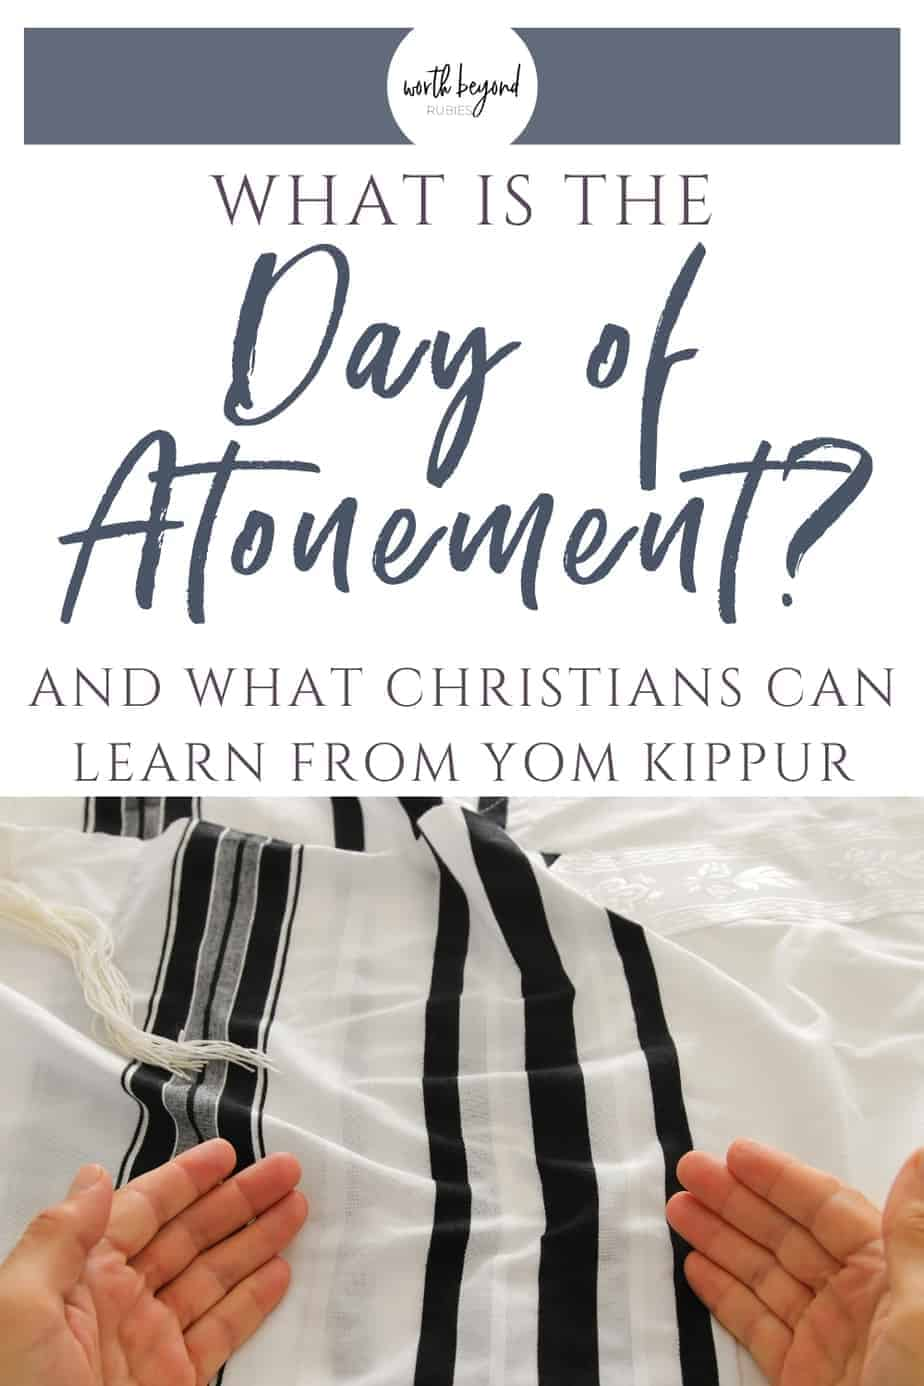 Jewish man's hands over tallit and text overlay that says What is the Day of Atonement and What Christians Can Learn From Yom Kippur